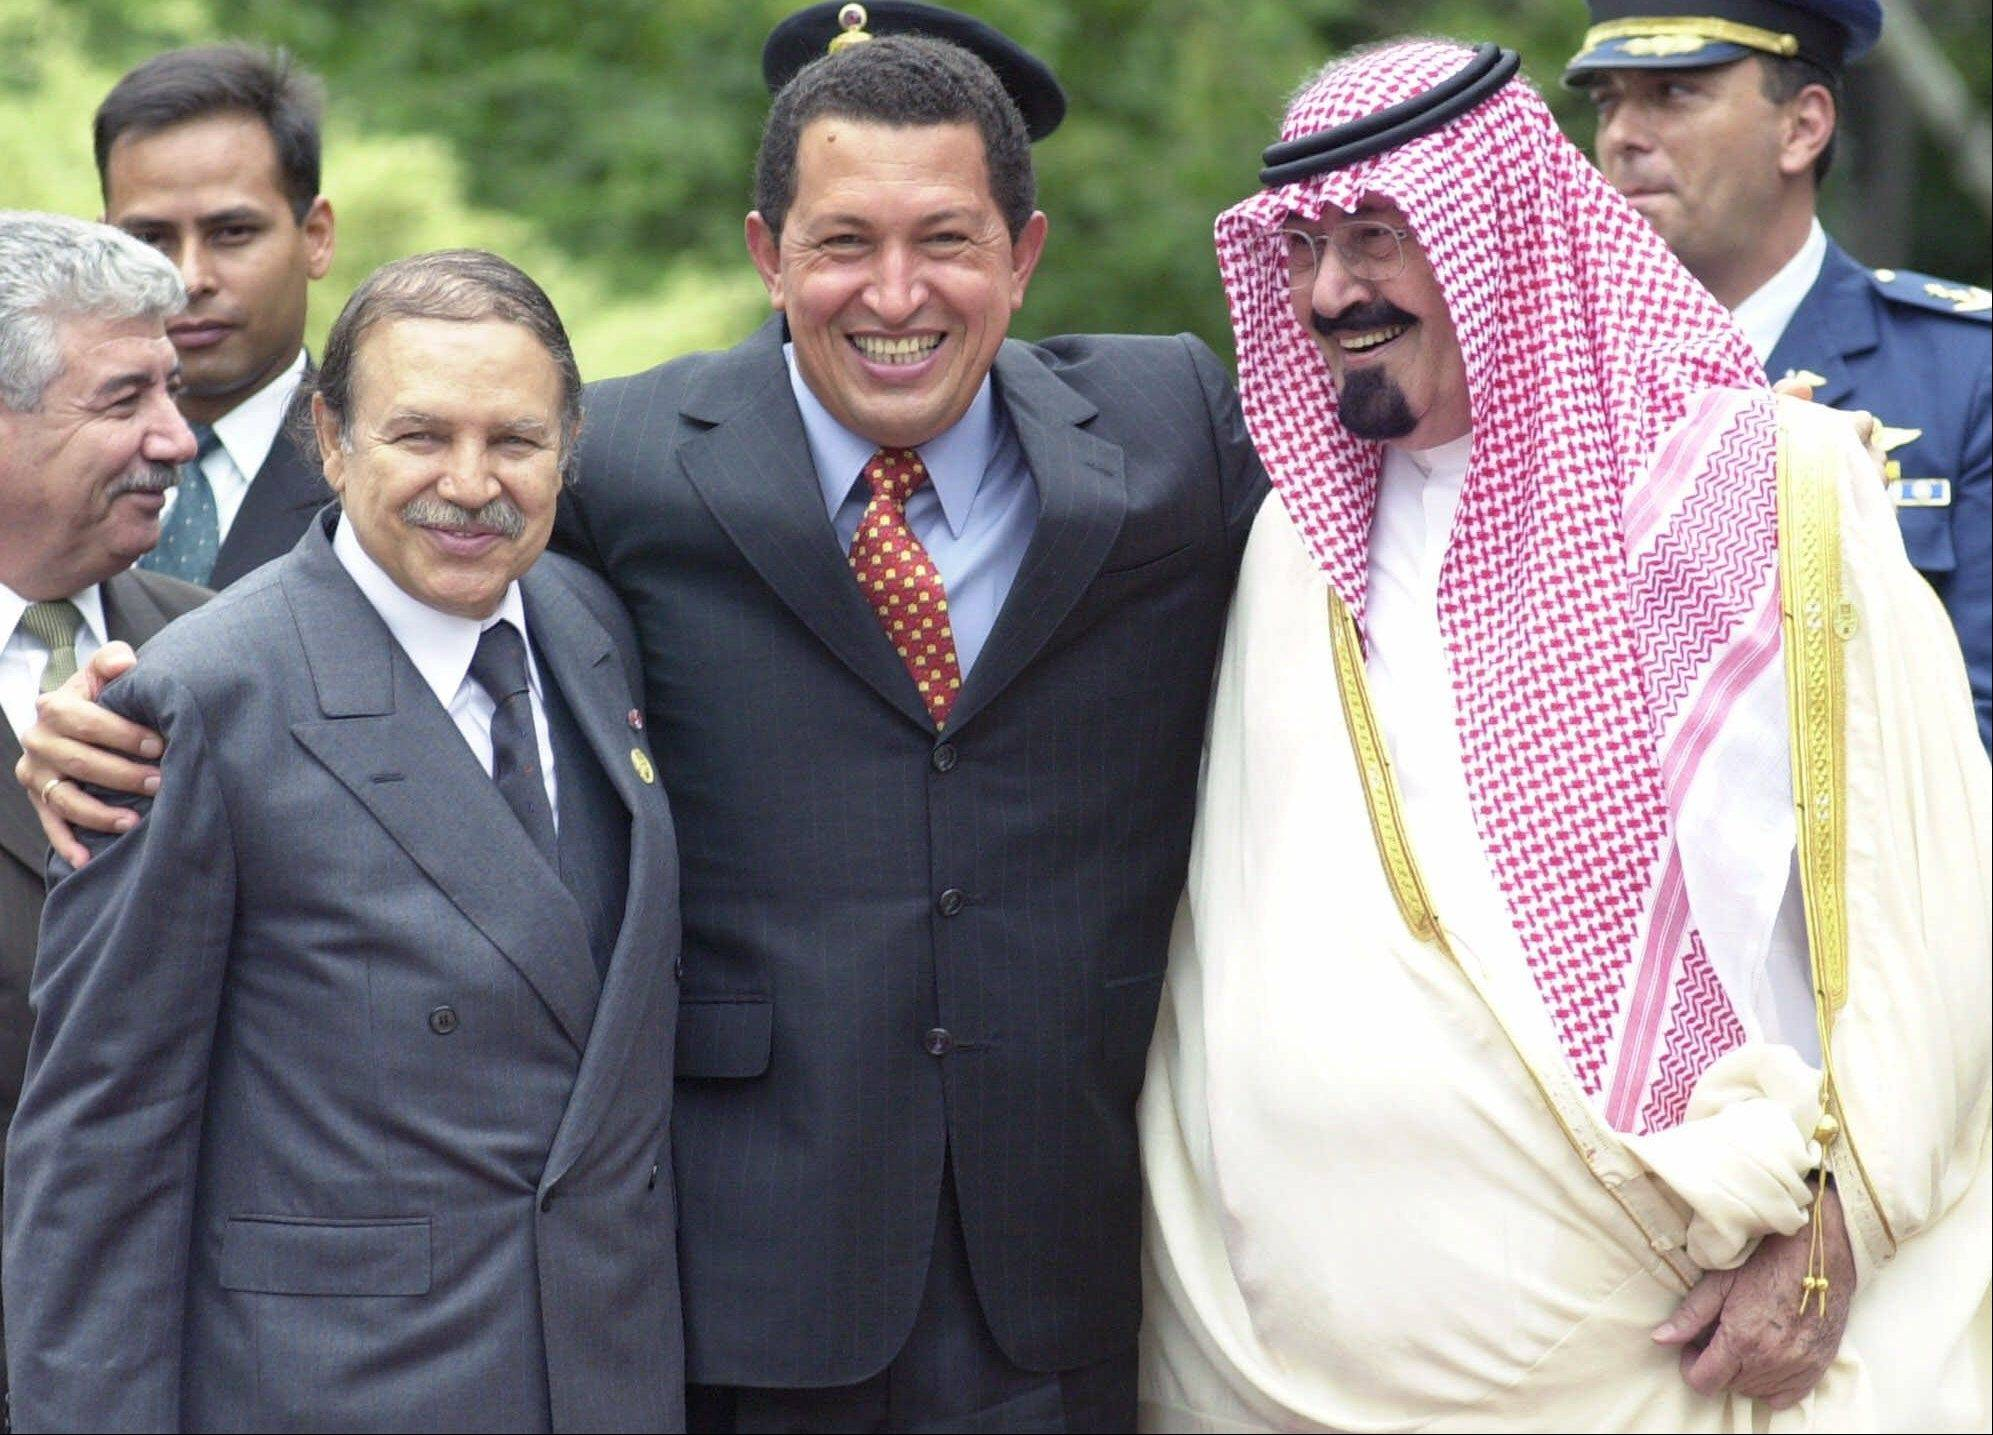 In this Sept. 28, 2000 file photo, Venezuela's President Hugo Chavez, center, Algeria's President Abdelaziz Bouteflika, left, and Saudi Arabian Crown Prince Abdullah Bin Abdulaziz Al Saud joke after posing for an official photograph on the final day of the second summit of the Organization of Petroleum Exporting Countries (OPEC) in Caracas, Venezuela.